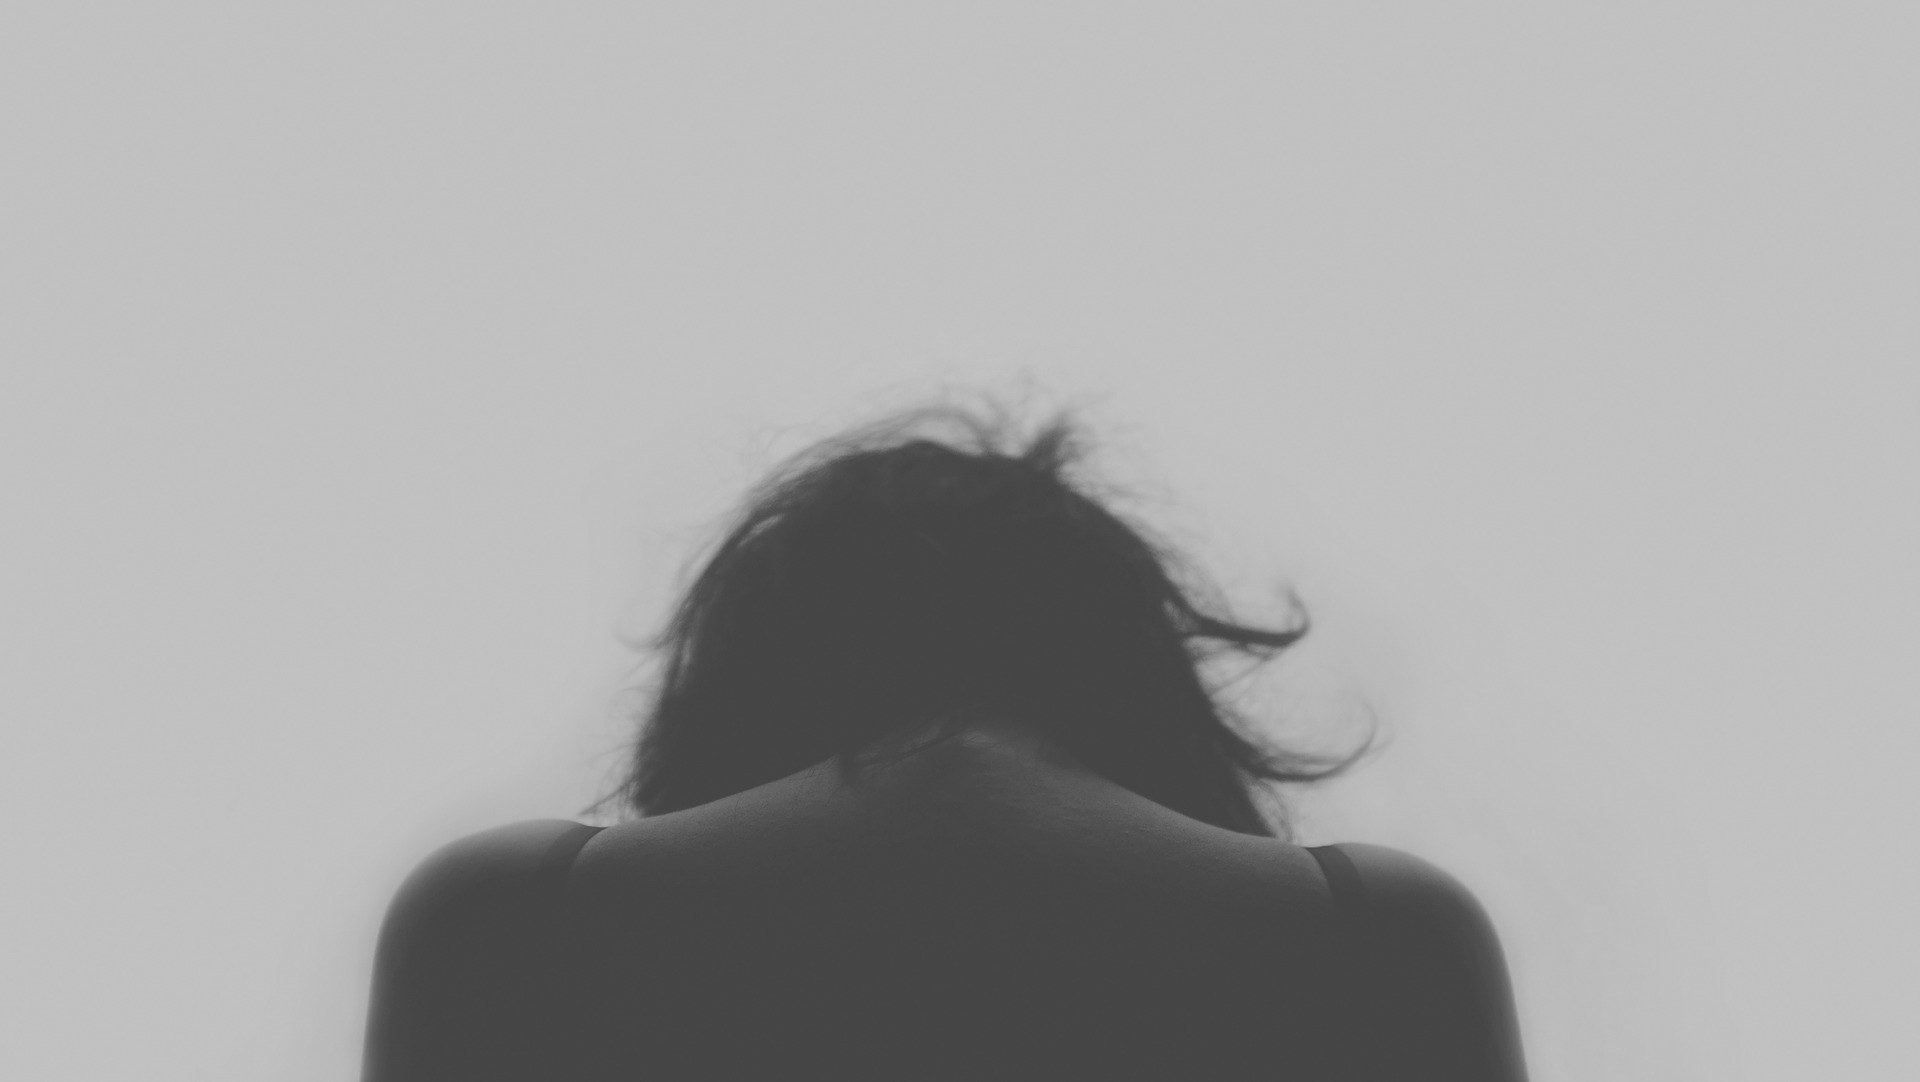 A black and white photograph of a sad woman facing away from the camera. Her head is lowered.